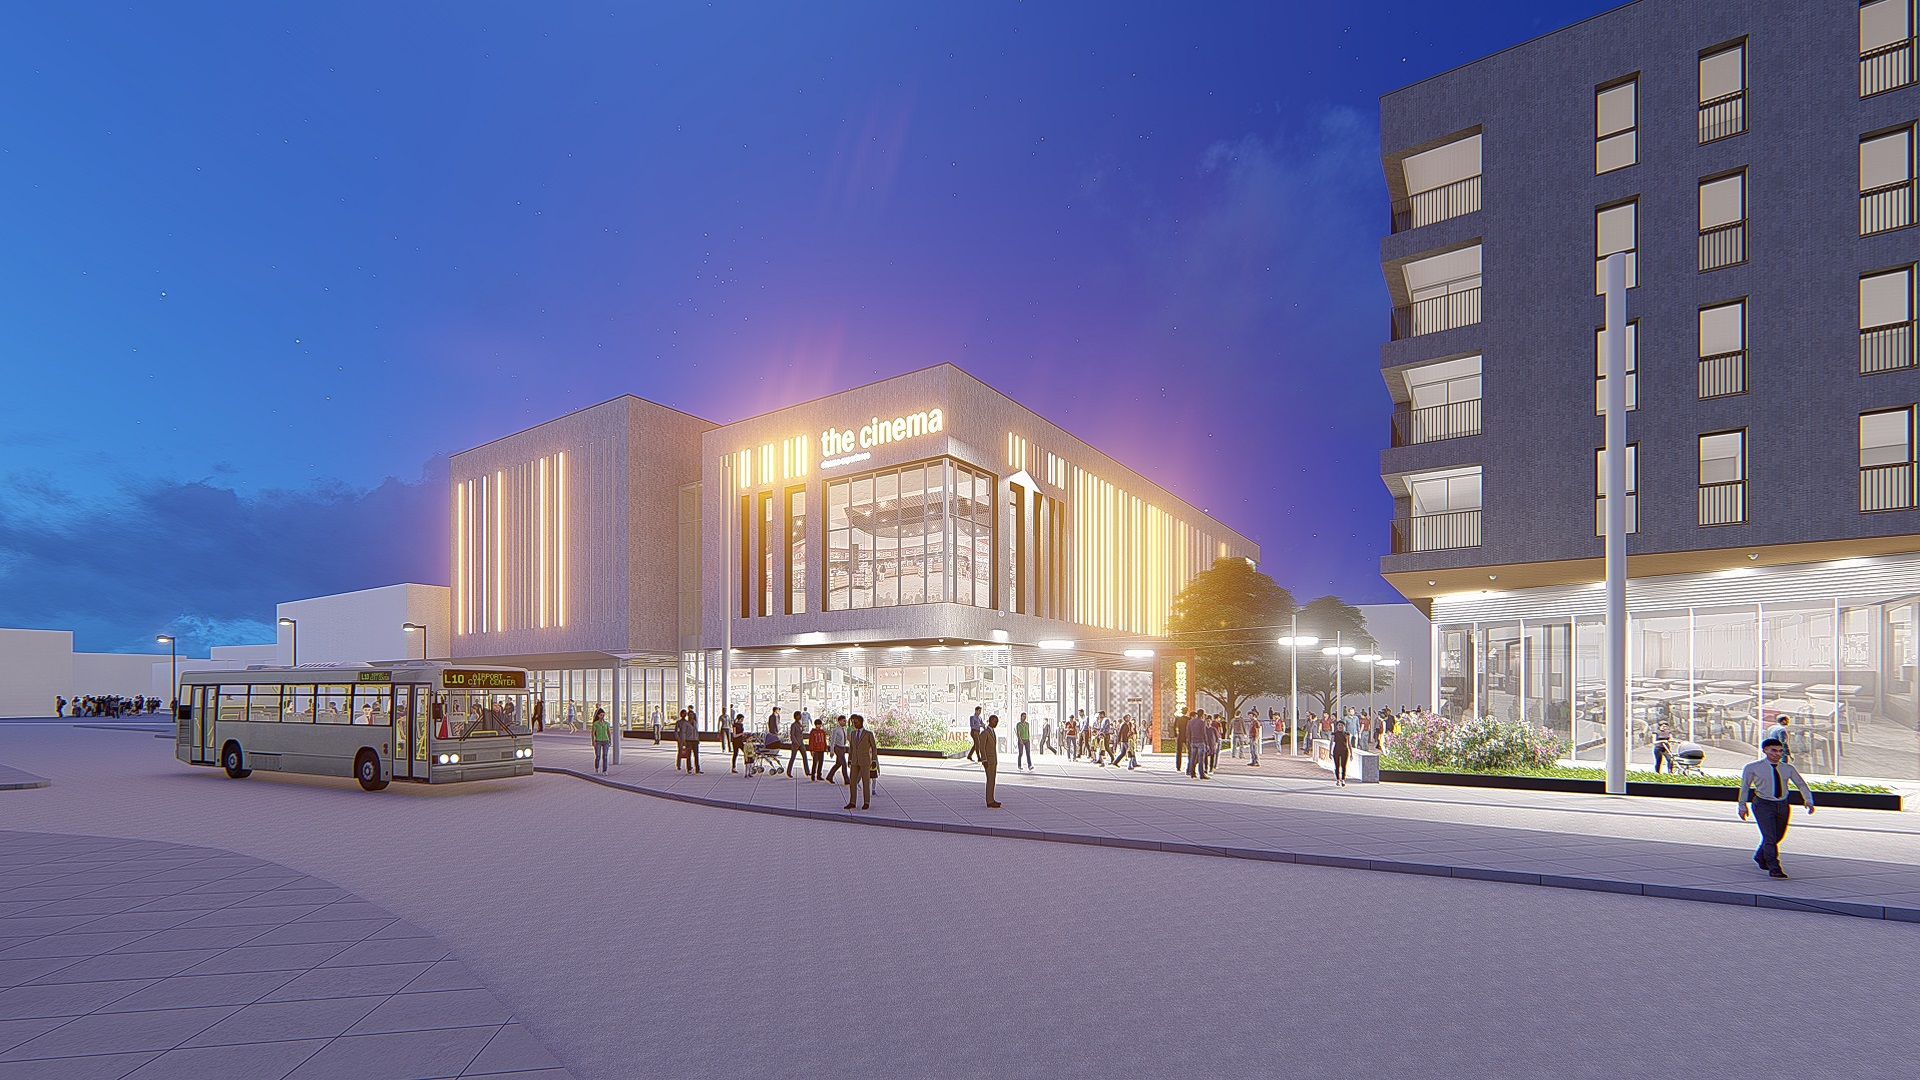 DECEMBER HANDOVER ANNOUCED FOR BEESTON CINEMA PROJECT